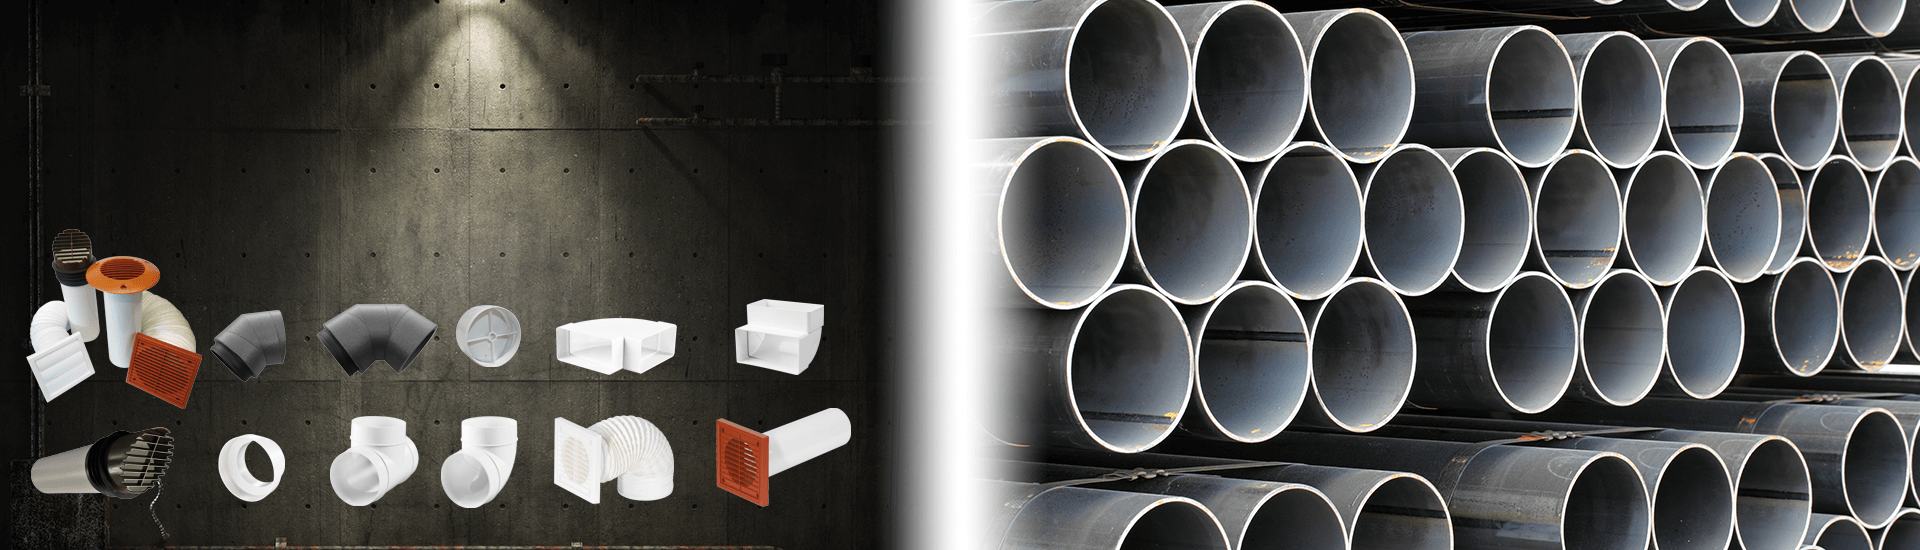 ducting-accessories